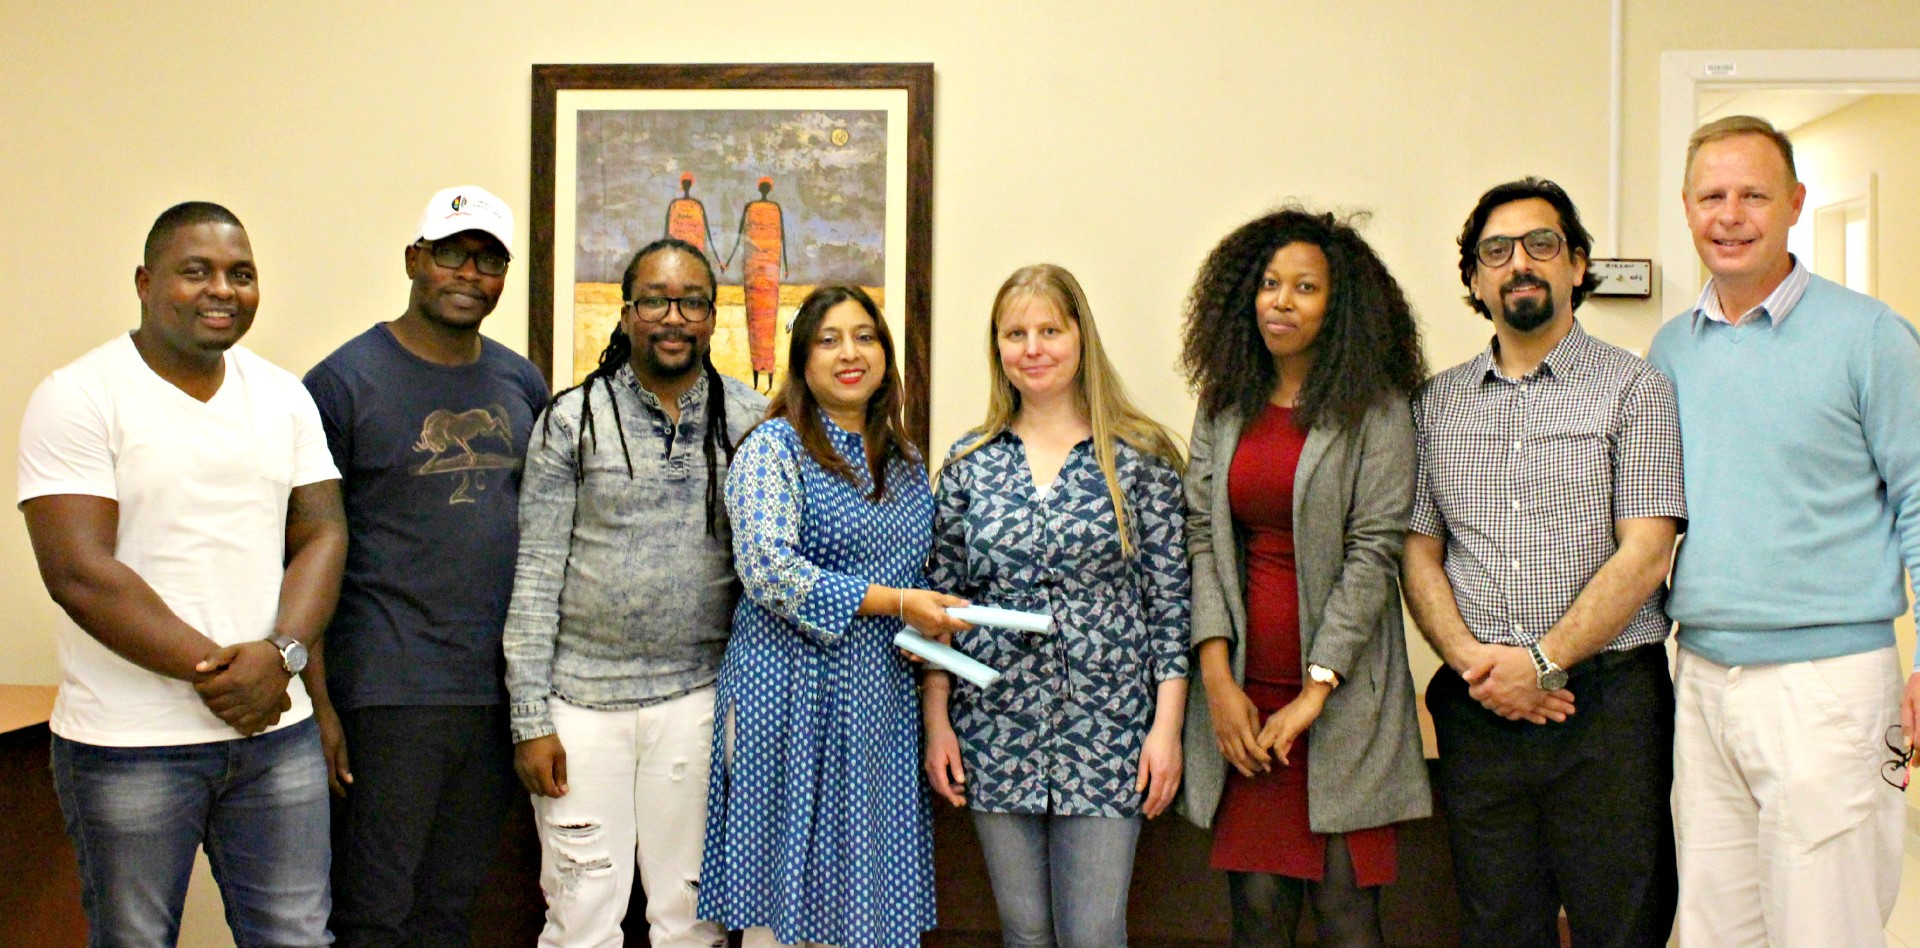 Professor Shanta Balgobind Singh (fourth left) hands over a token of appreciation to Dr My Lilja (fifth left) from the University of Gӓvle. They are seen with staff and the Dean and Head of School, Prof Jean Steyn (eighth left), from the School of Applied Human Sciences.